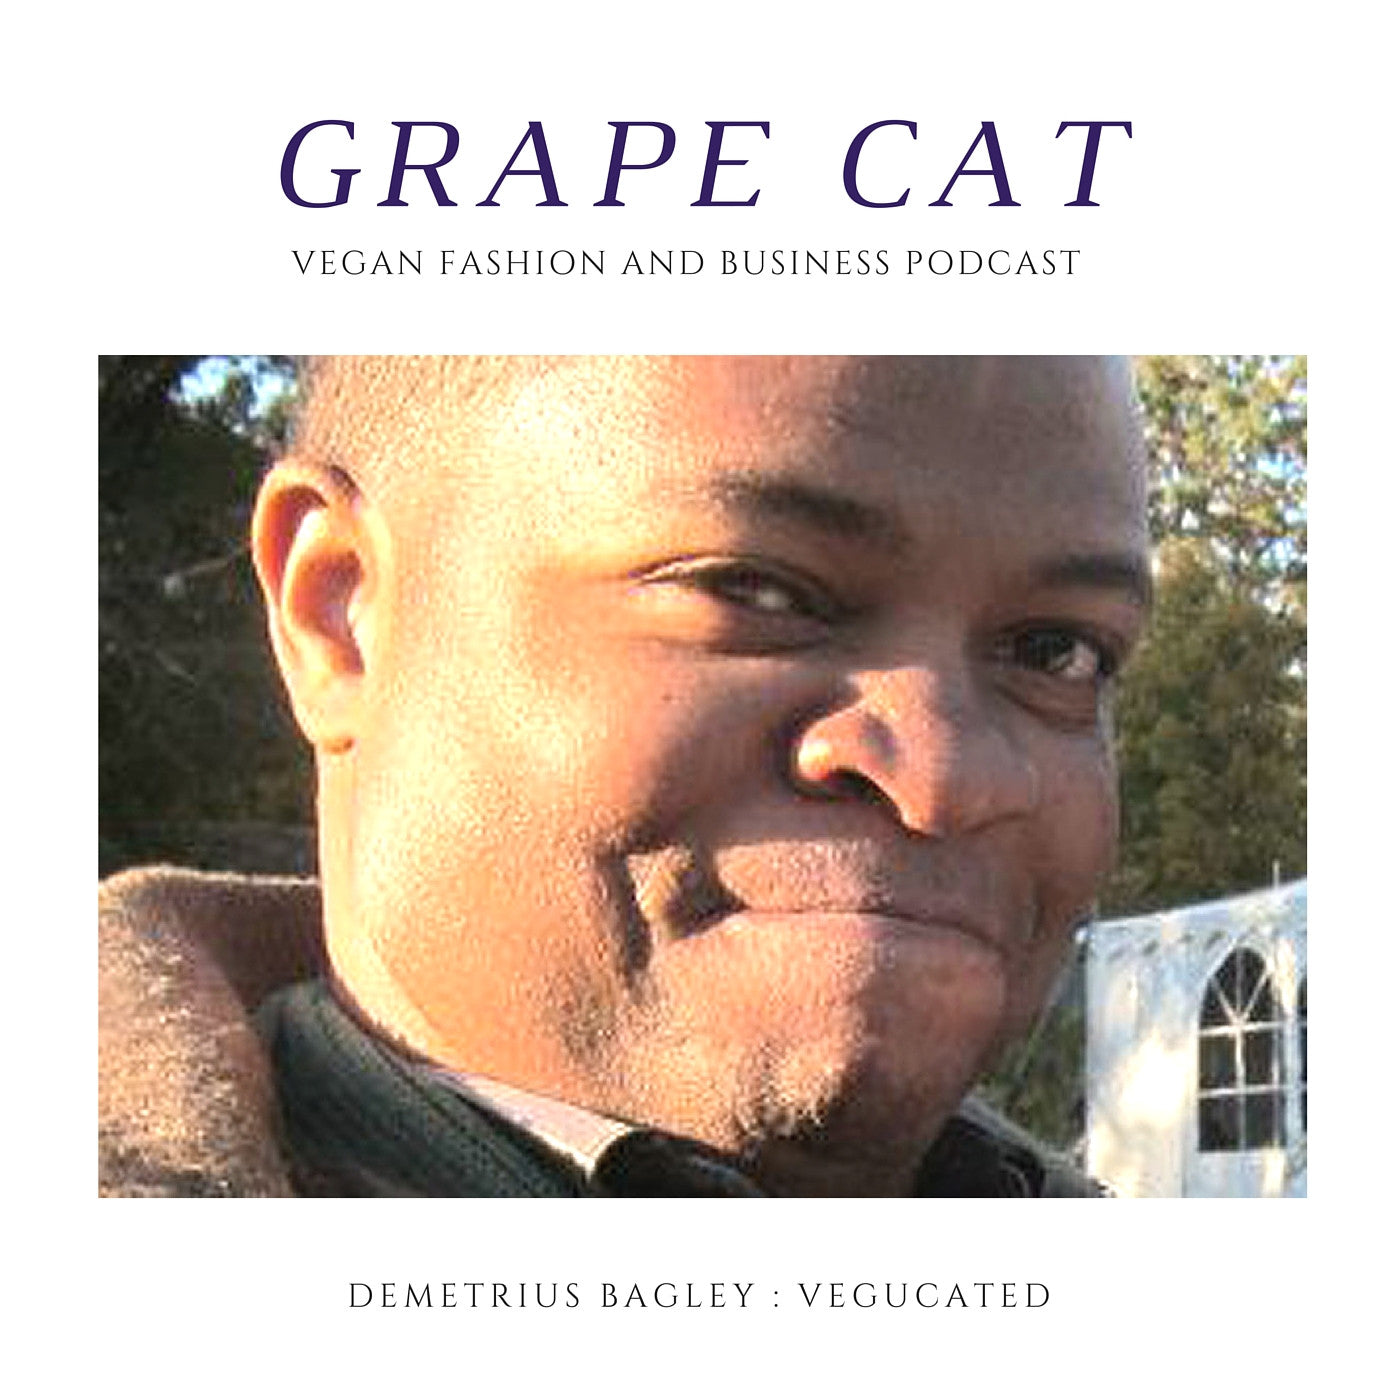 Interview with Demetrius Bagley, Producer of Vegucated